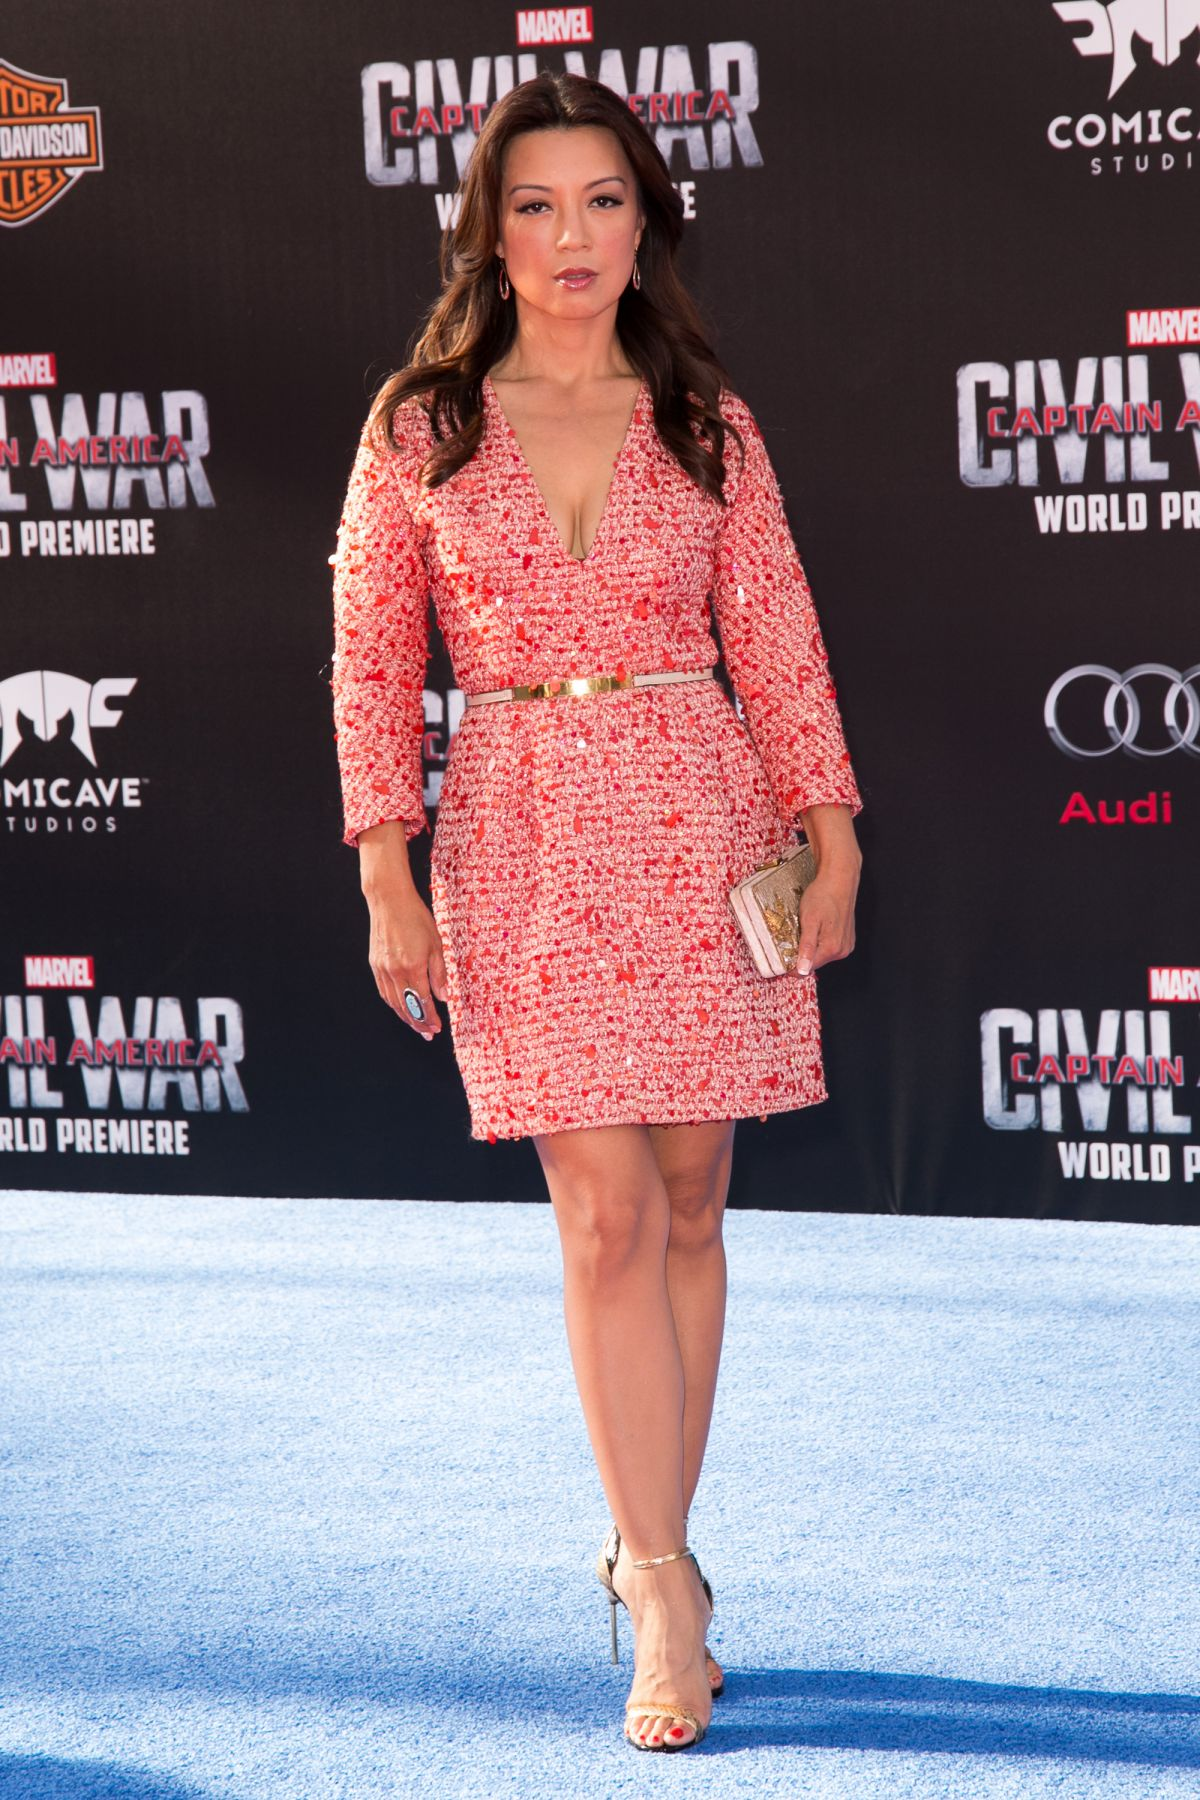 MING-NA WEN at Captain America: Civil War Premiere in Los Angeles 04/12/2016